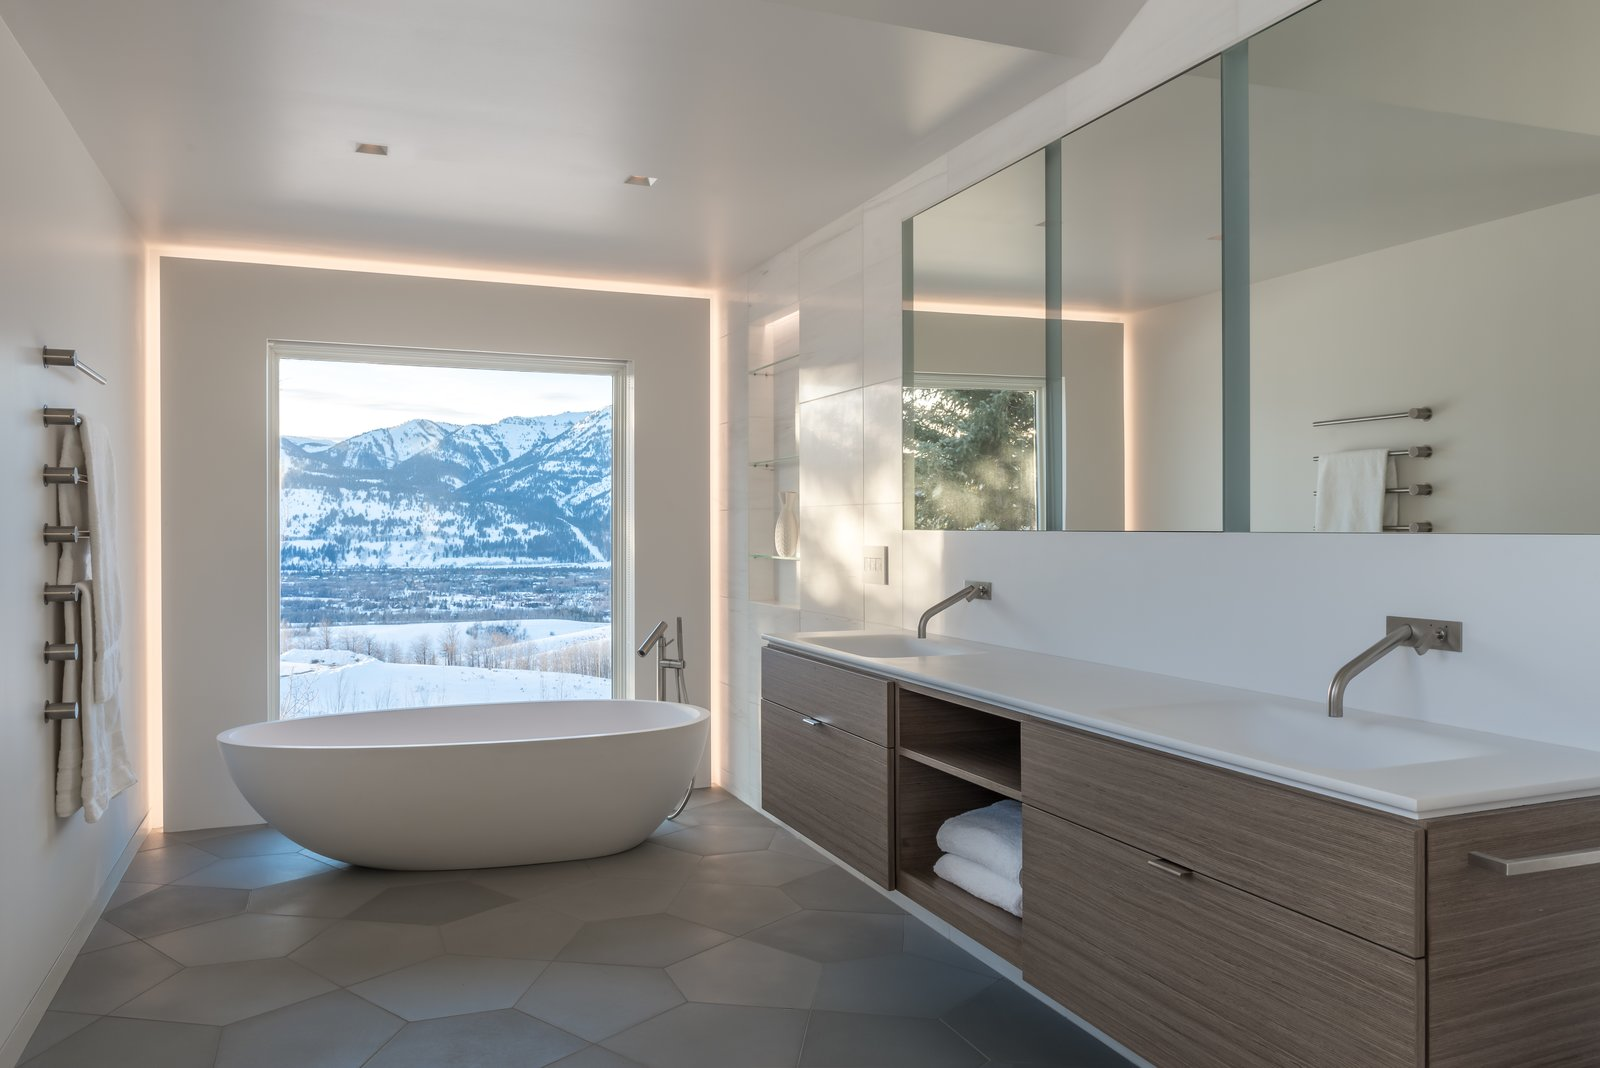 Previous master bathroom was divided into three separate spaces, with the mountain view terminating in a closet.  The walls were removed to open views to the west and create one large space.  Custom pentagon shaped concrete tiles compliment the Eco-Wood veneer floating vanity.  San Francisco Meets Jackson Hole in a Modern Renovation by Carney Logan Burke Architects